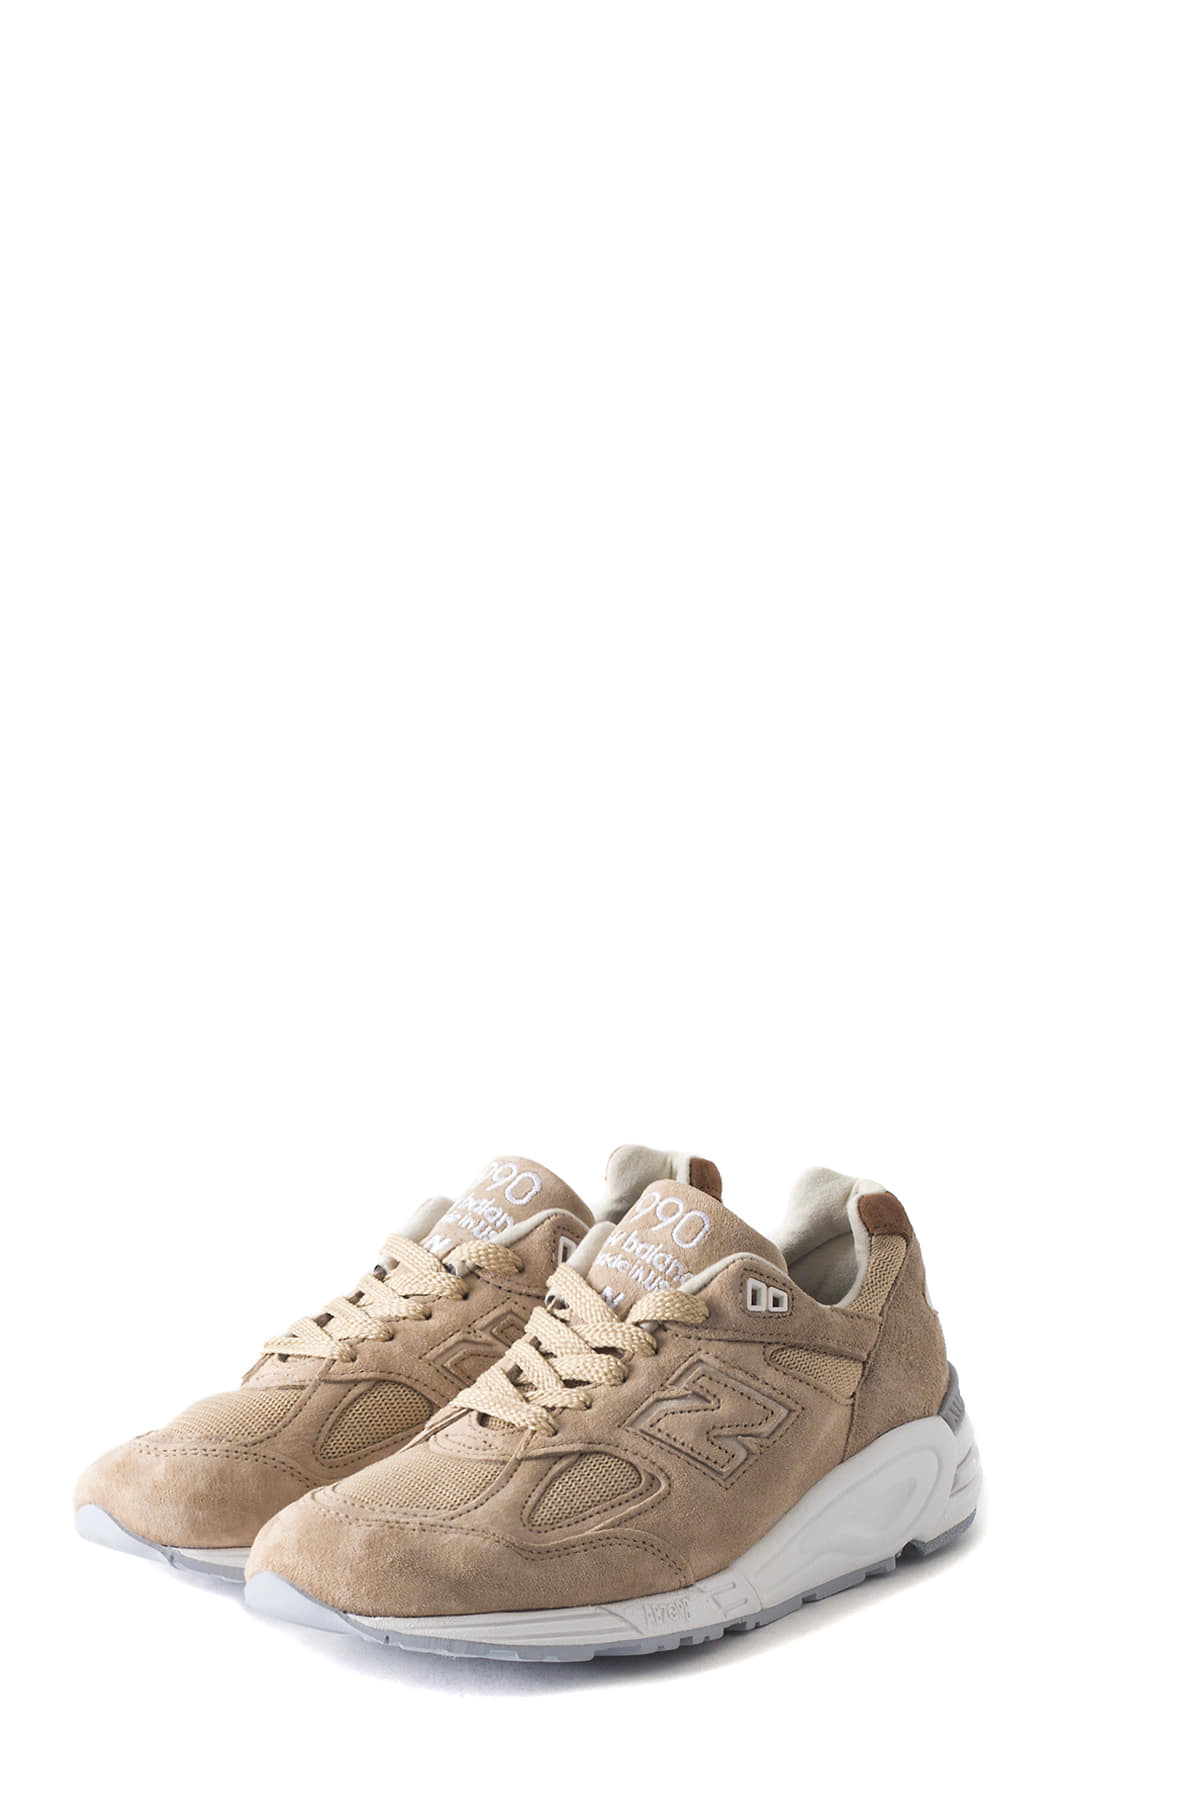 New Balance : M990TN2 (Beige)